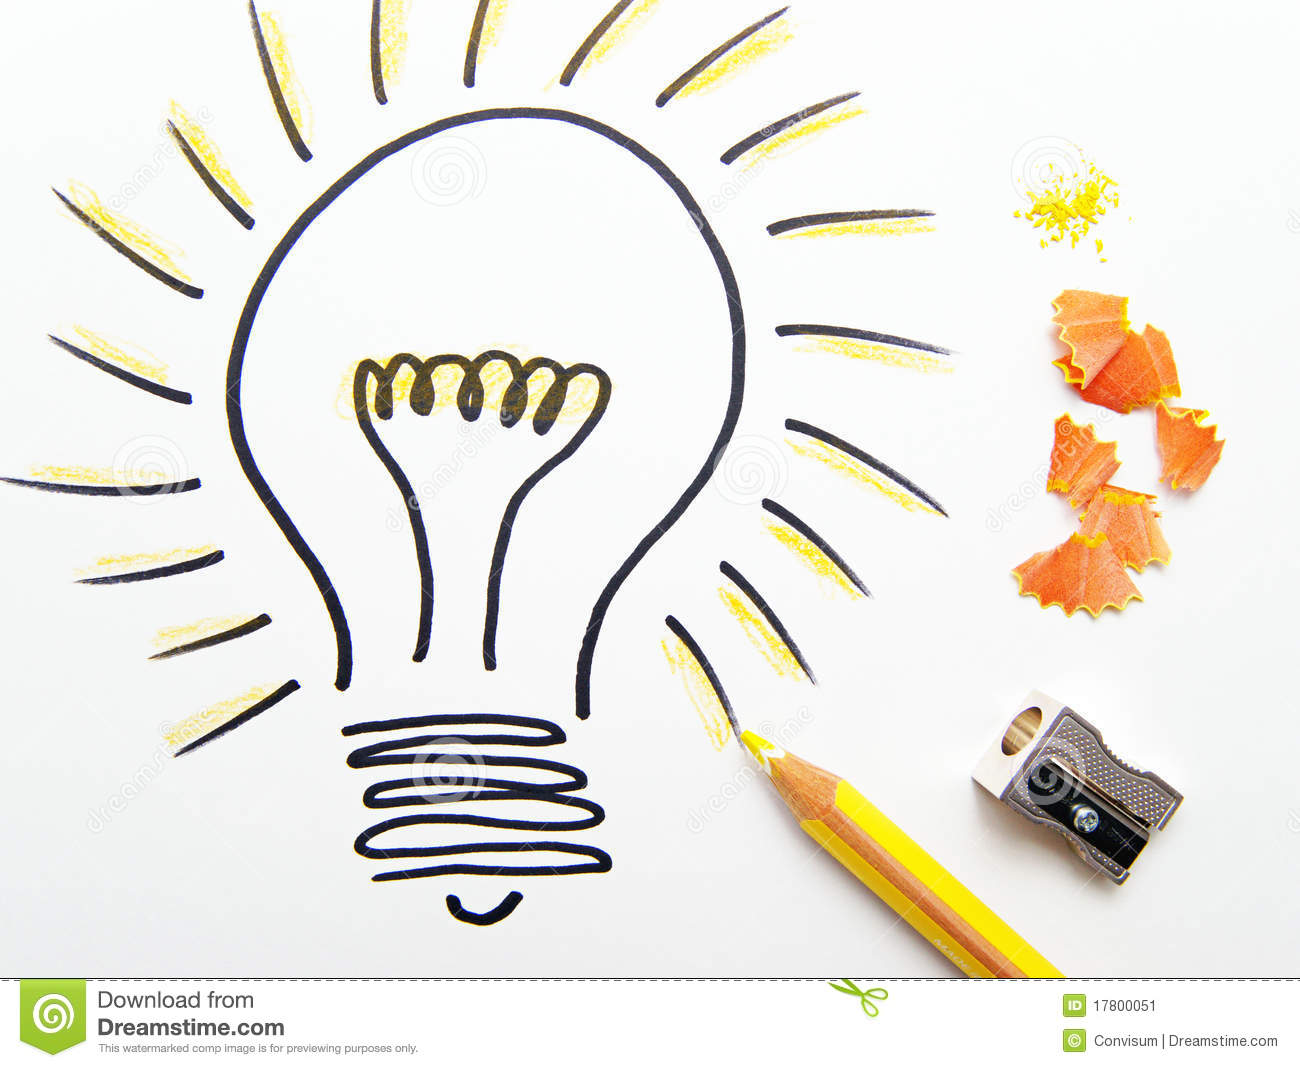 more similar stock images of ideas in a bulb